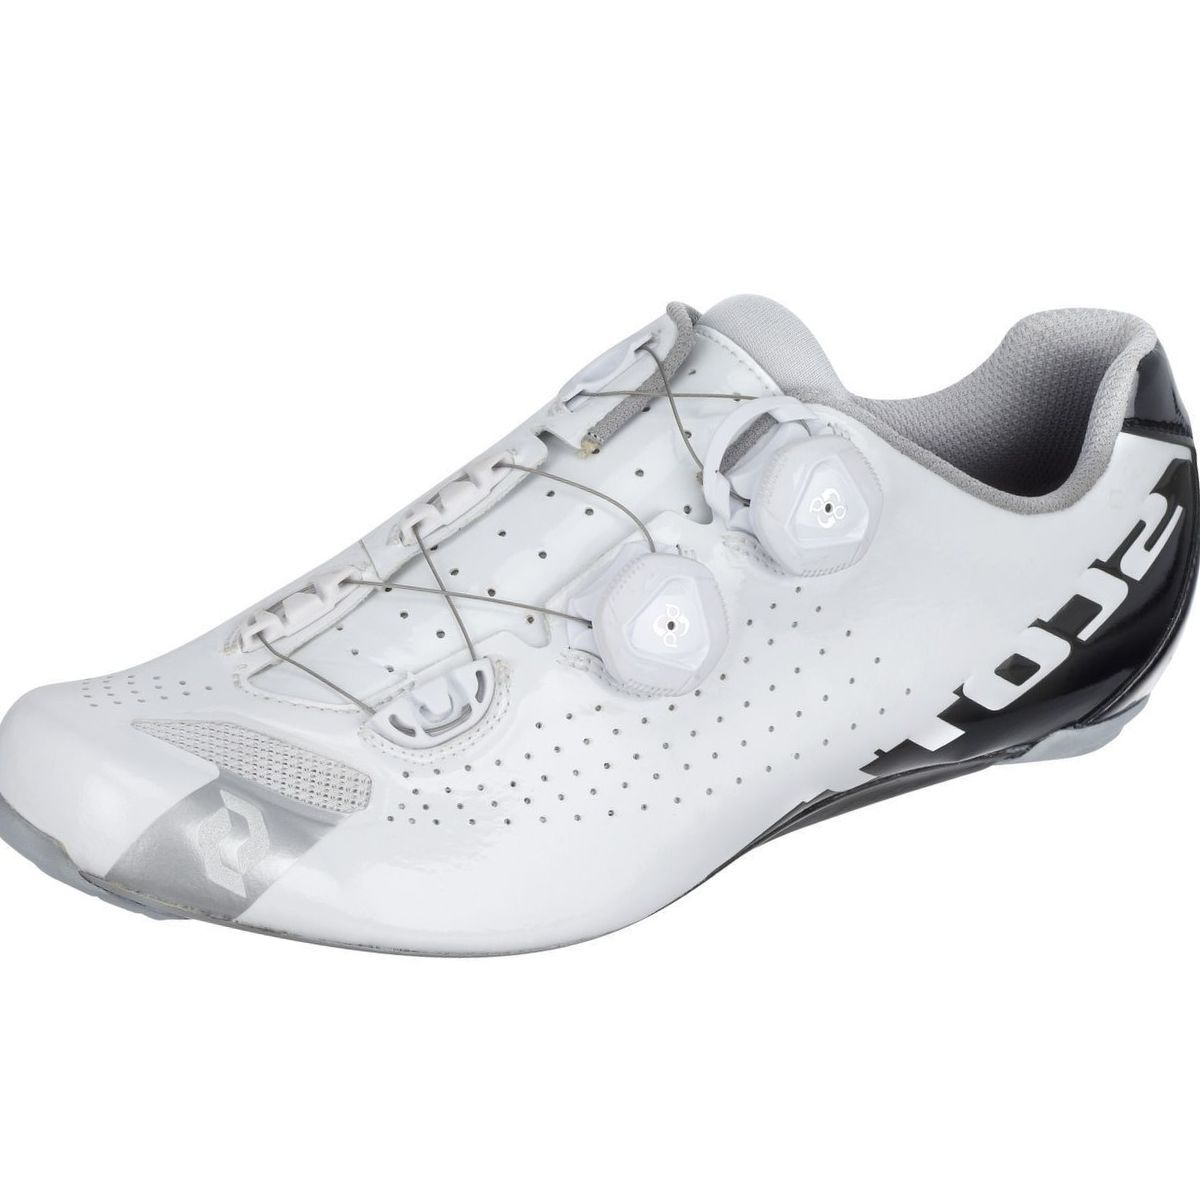 Scott Road RC Cycling Shoe - Men's